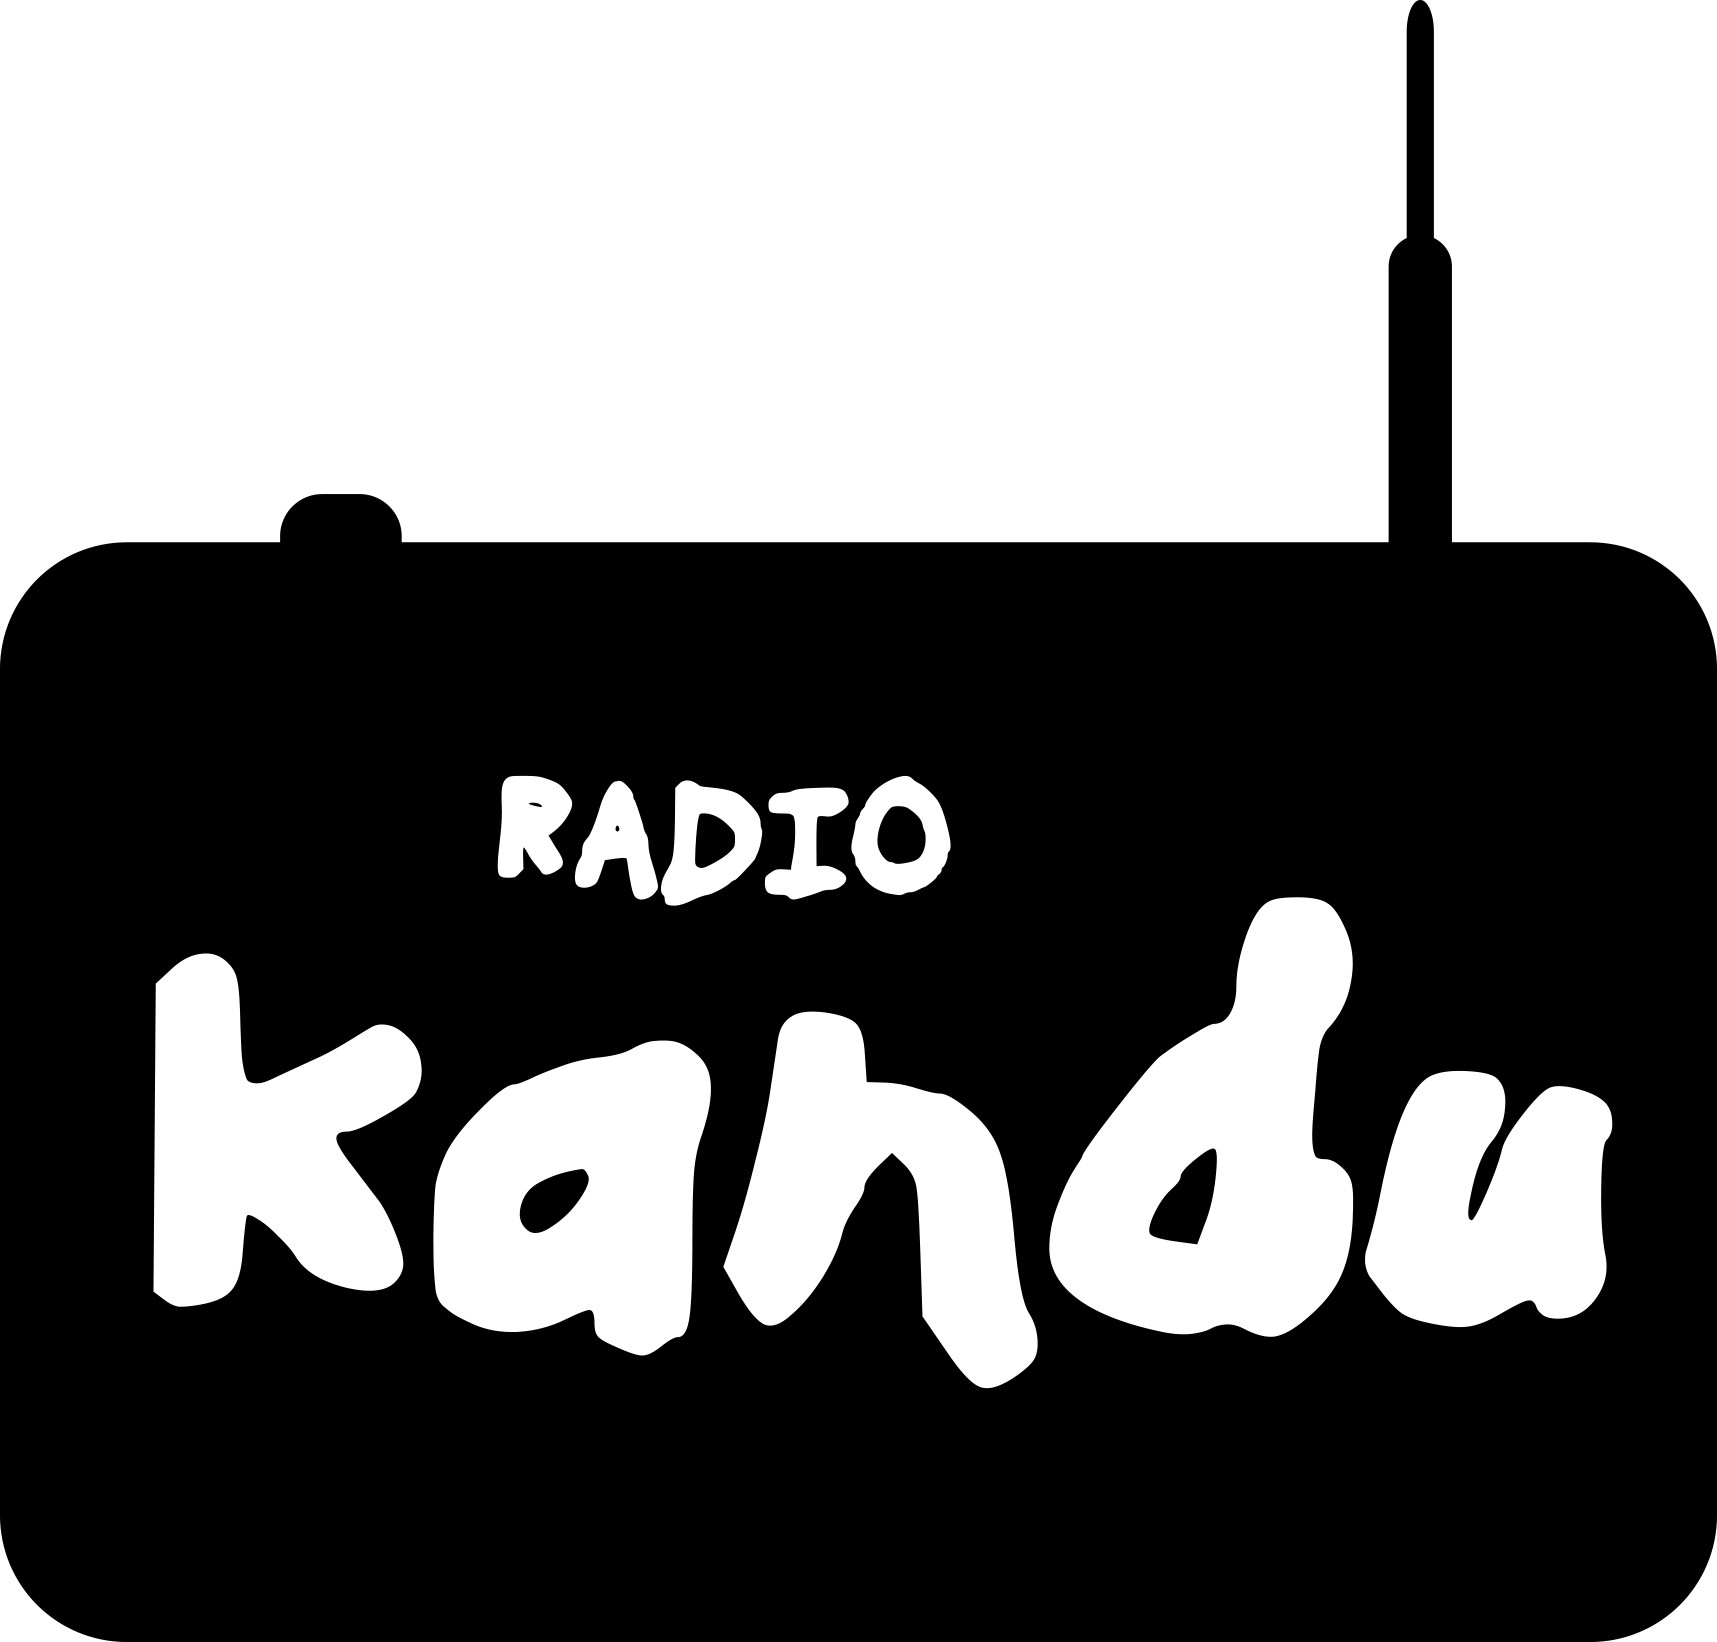 Please design a soulful, eclectic logo for my new Online Radio Station! KANDU RADIO